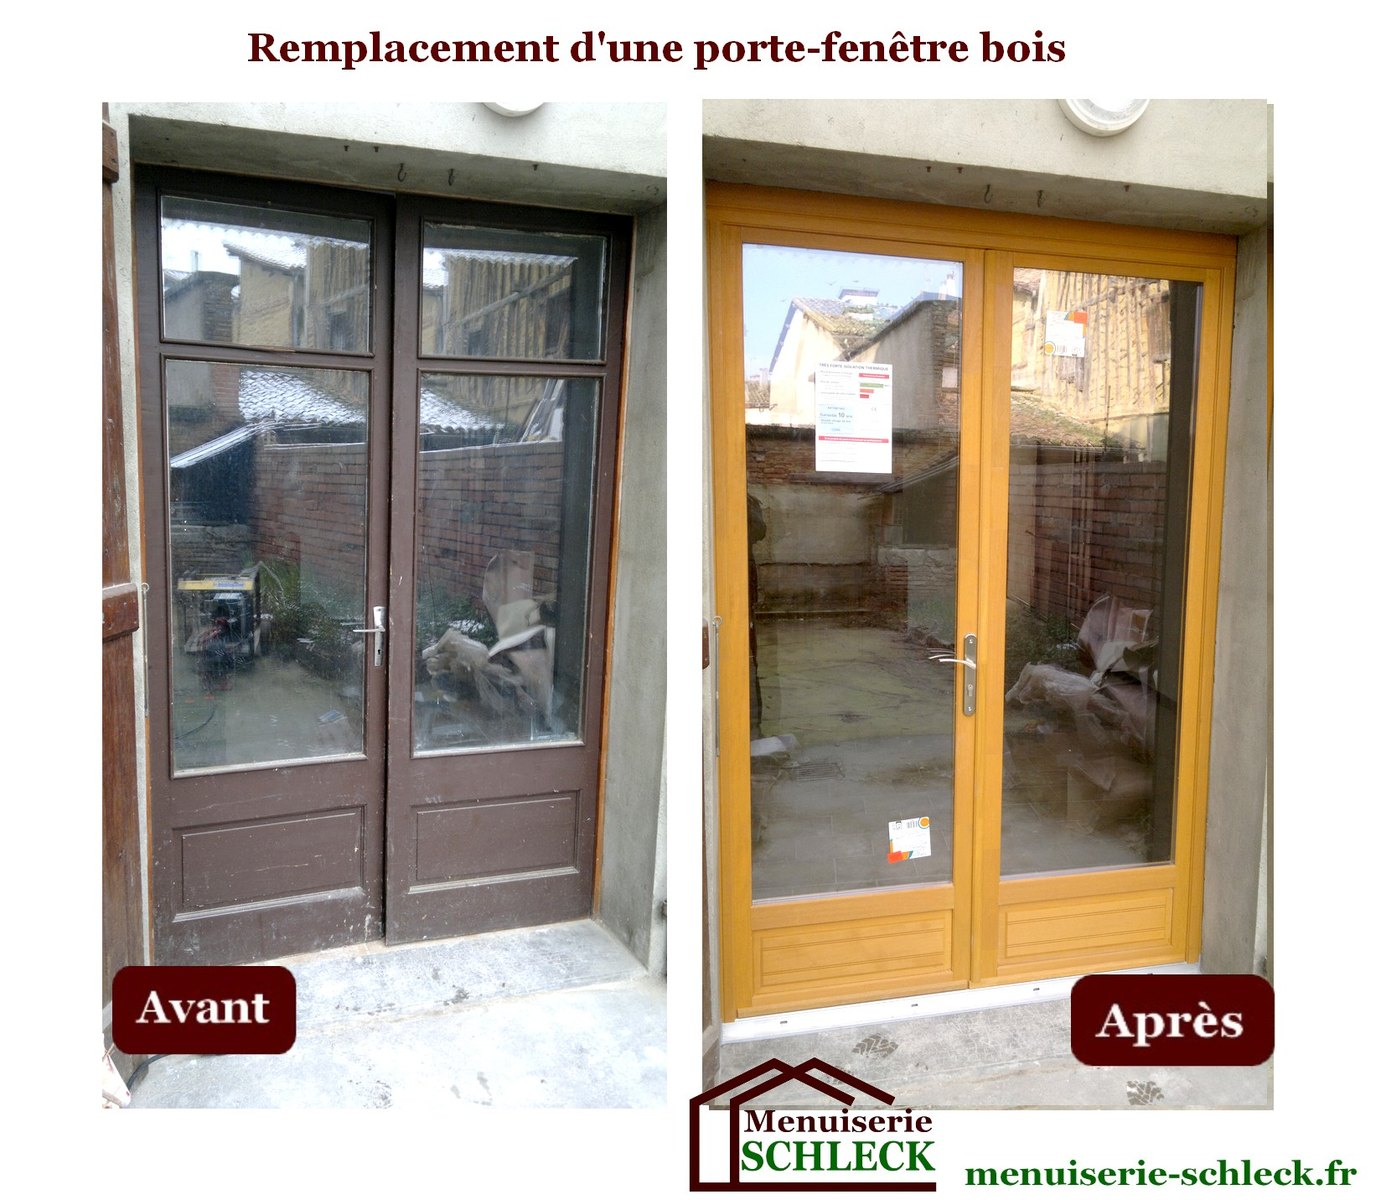 Menuiserie r novation schleck nos r alisations - Renovation porte fenetre bois ...